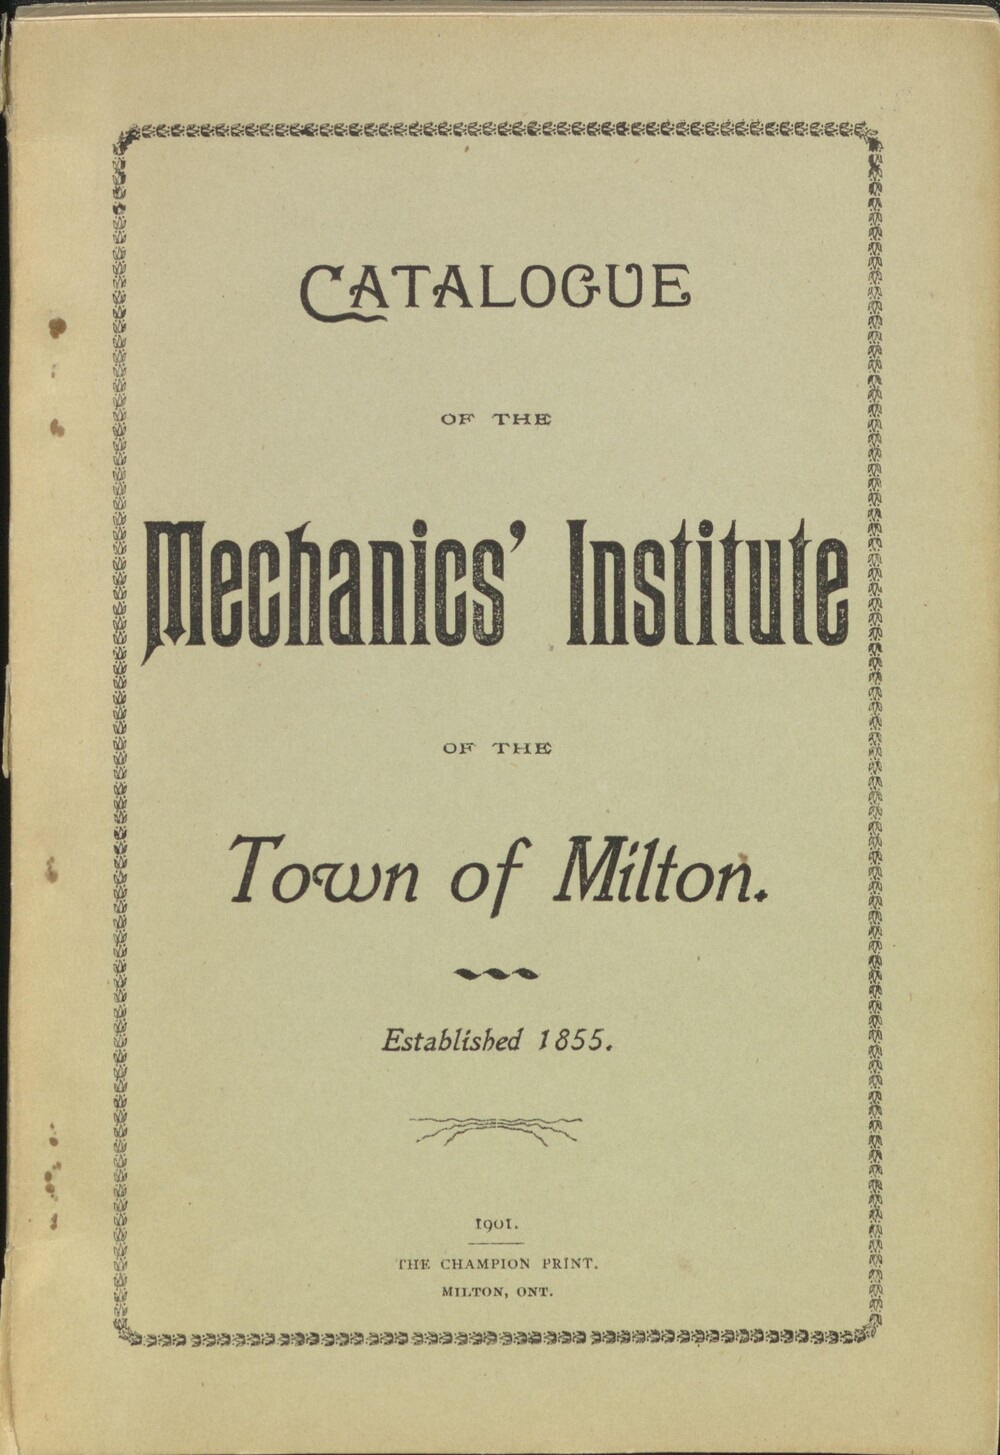 Catalogue of the Mechanic's Institute of the Town of Milton